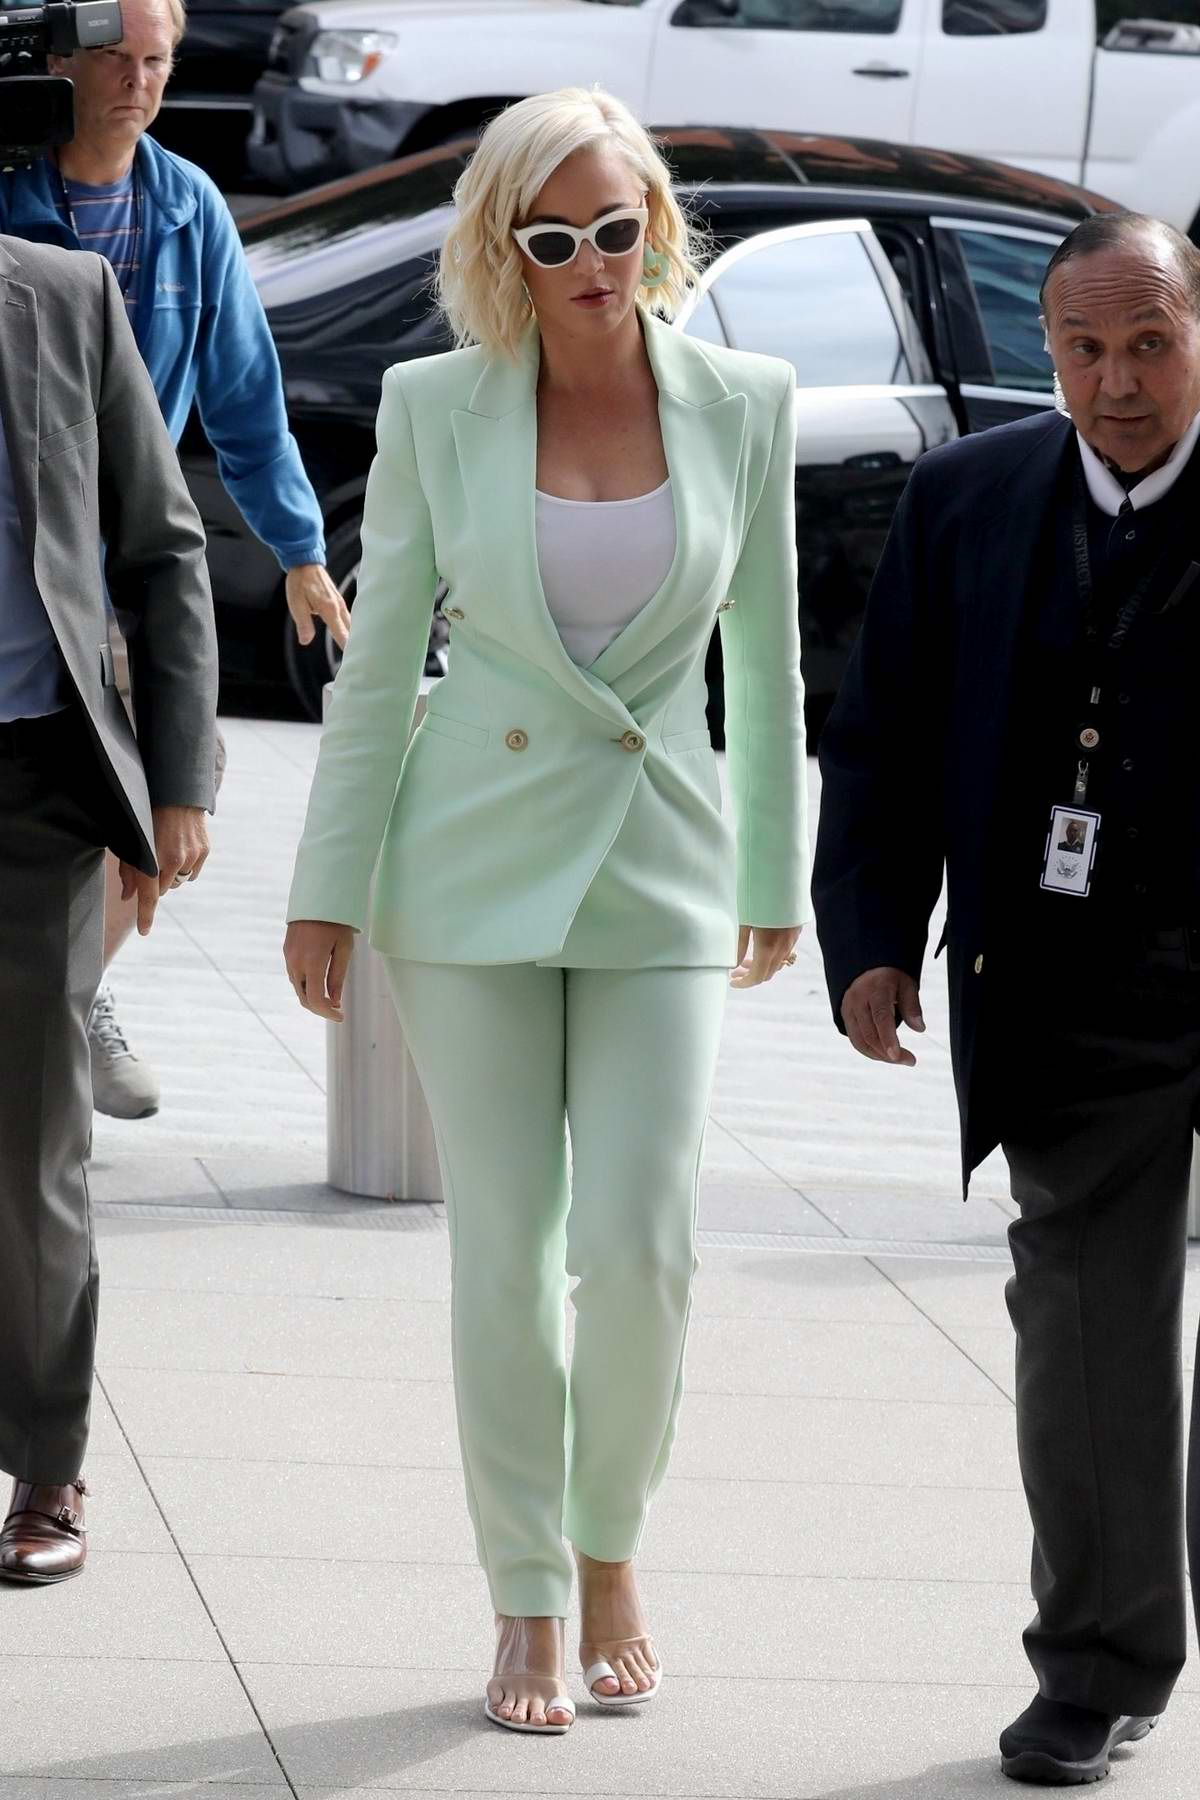 Katy Perry seen wearing a mint green suit while arriving at court for her copyright infringement lawsuit in Los Angeles